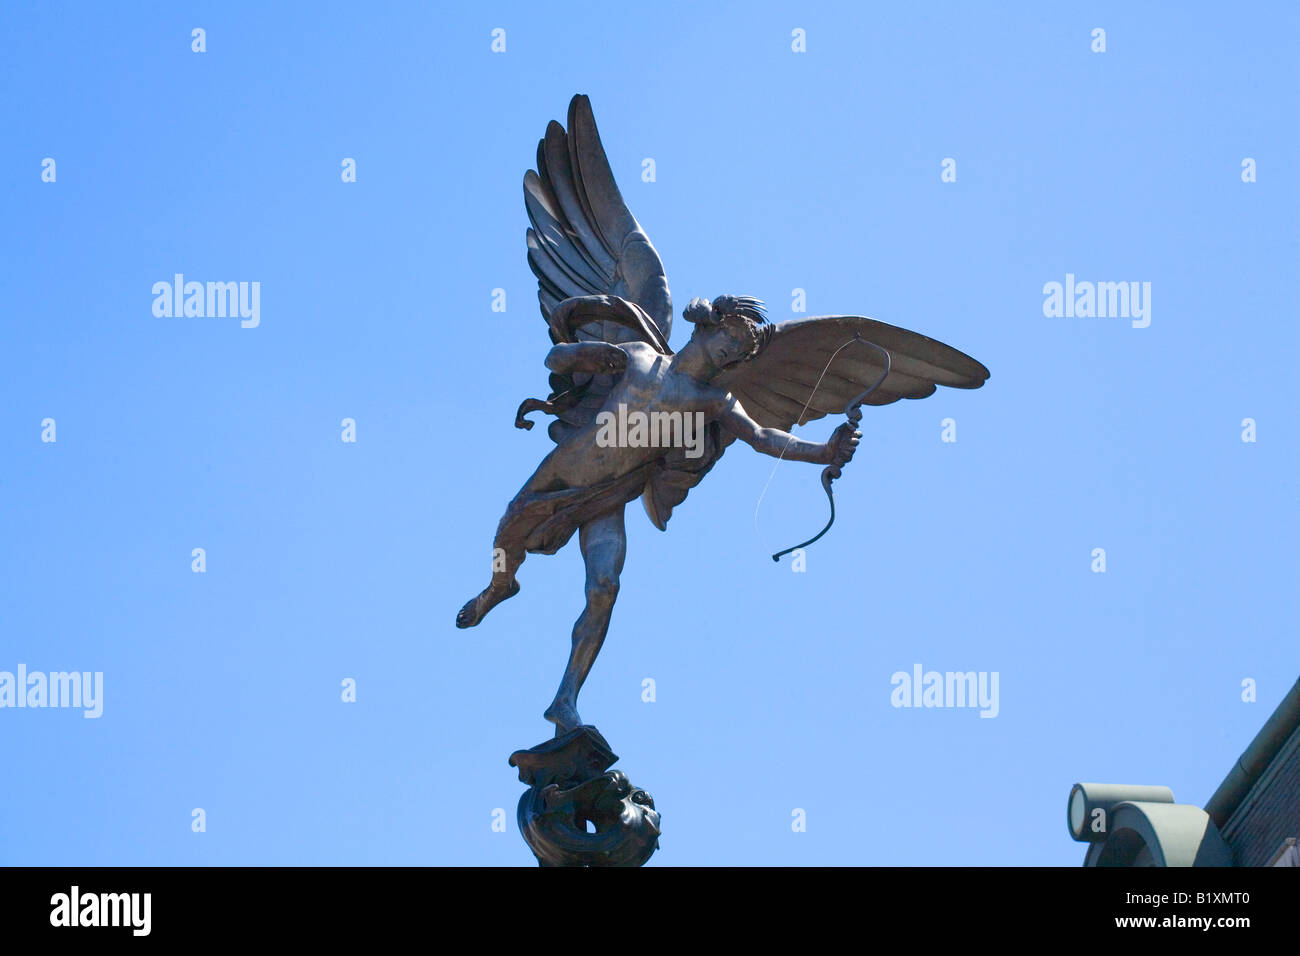 The Statue of Eros at Piccadilly in LOndon - Stock Image